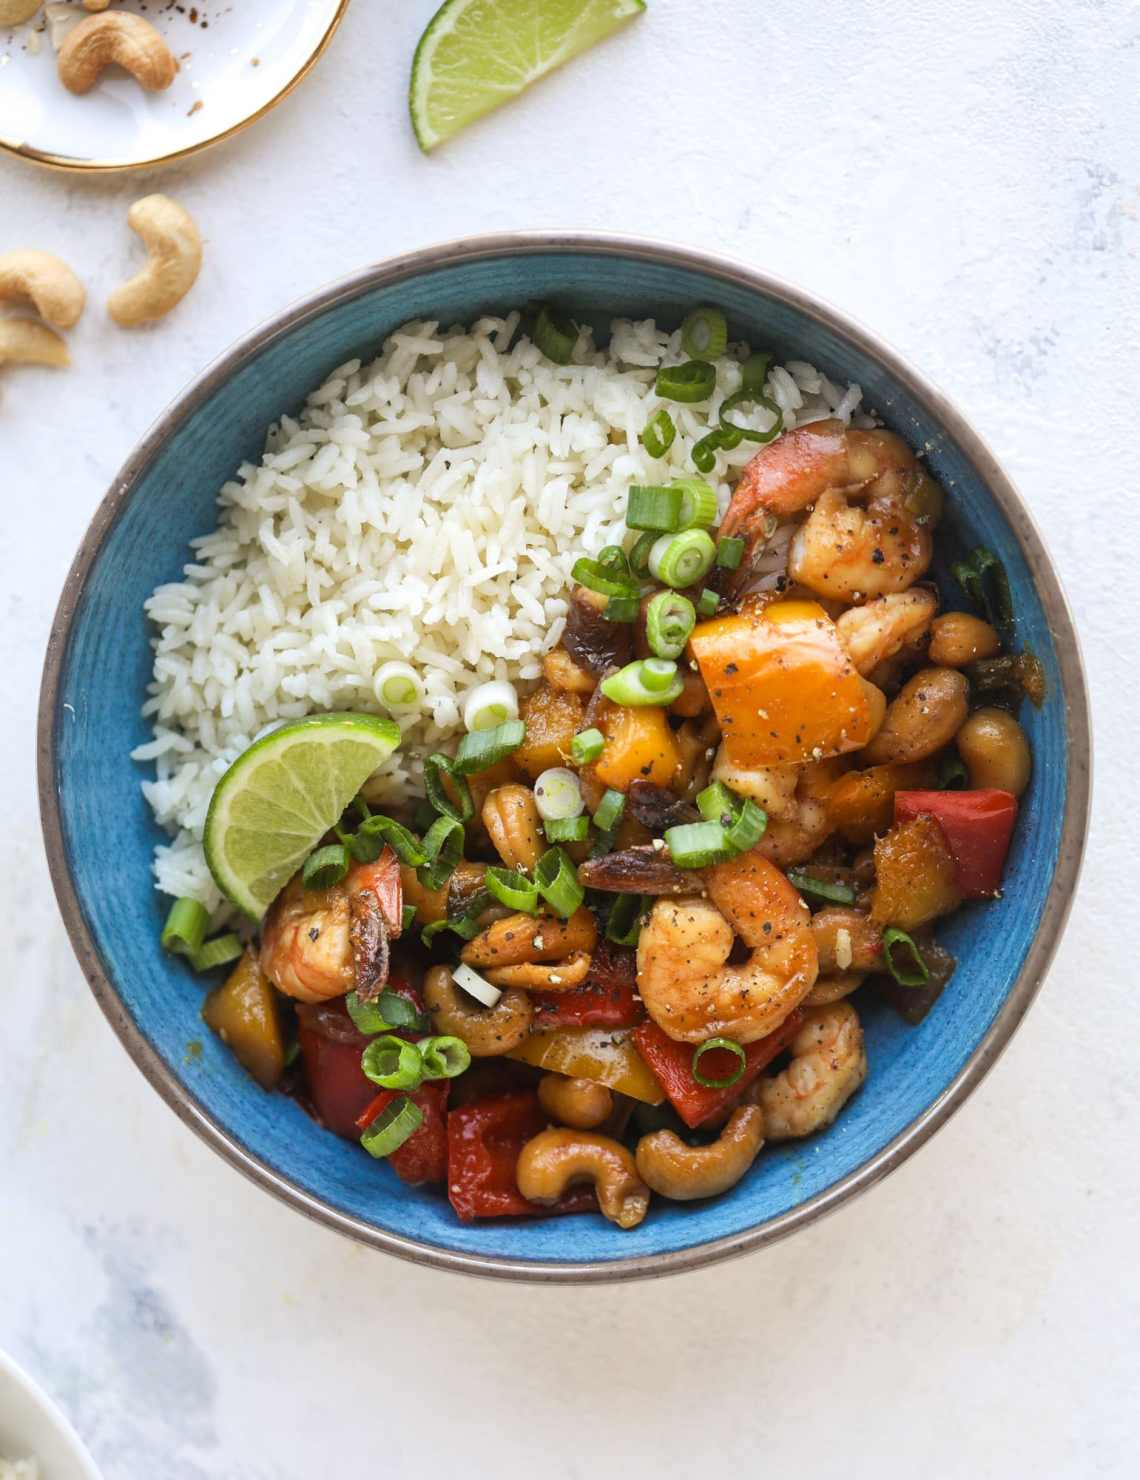 This cashew shrimp stir fry is a super simple weeknight meal! Made with bell peppers and mango, it is delicious over rice and comes together in 25 minutes. I howsweeteats.com #cashew #shrimp